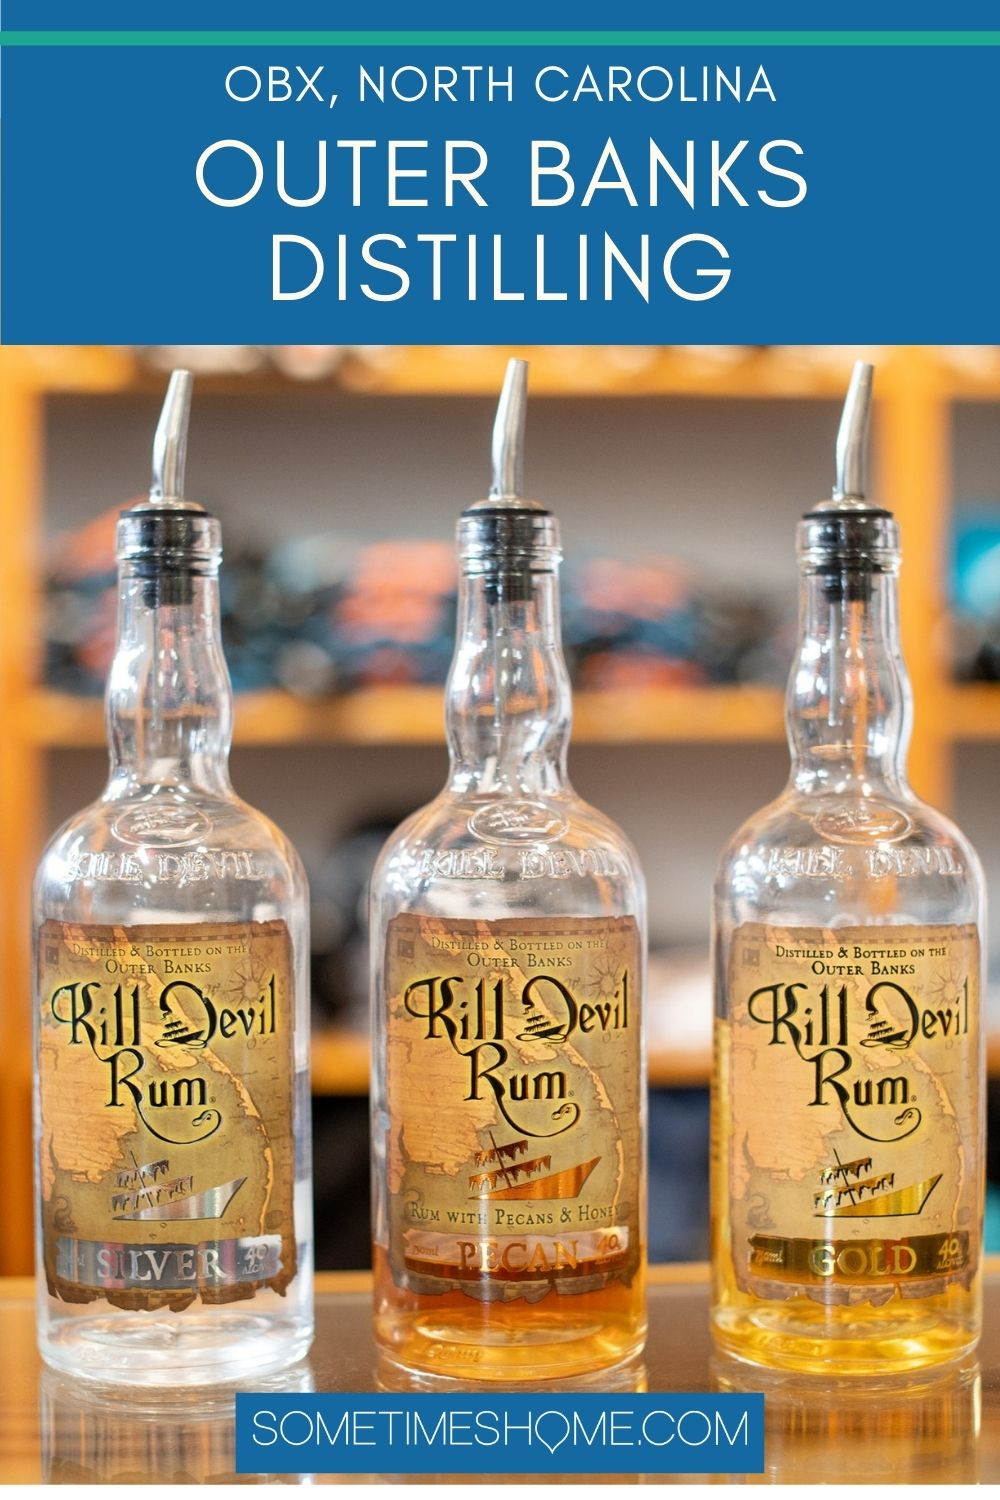 Pinterest image for OBX, North Carolina Outer Banks Distilling with three bottles of Kill Devil Rum